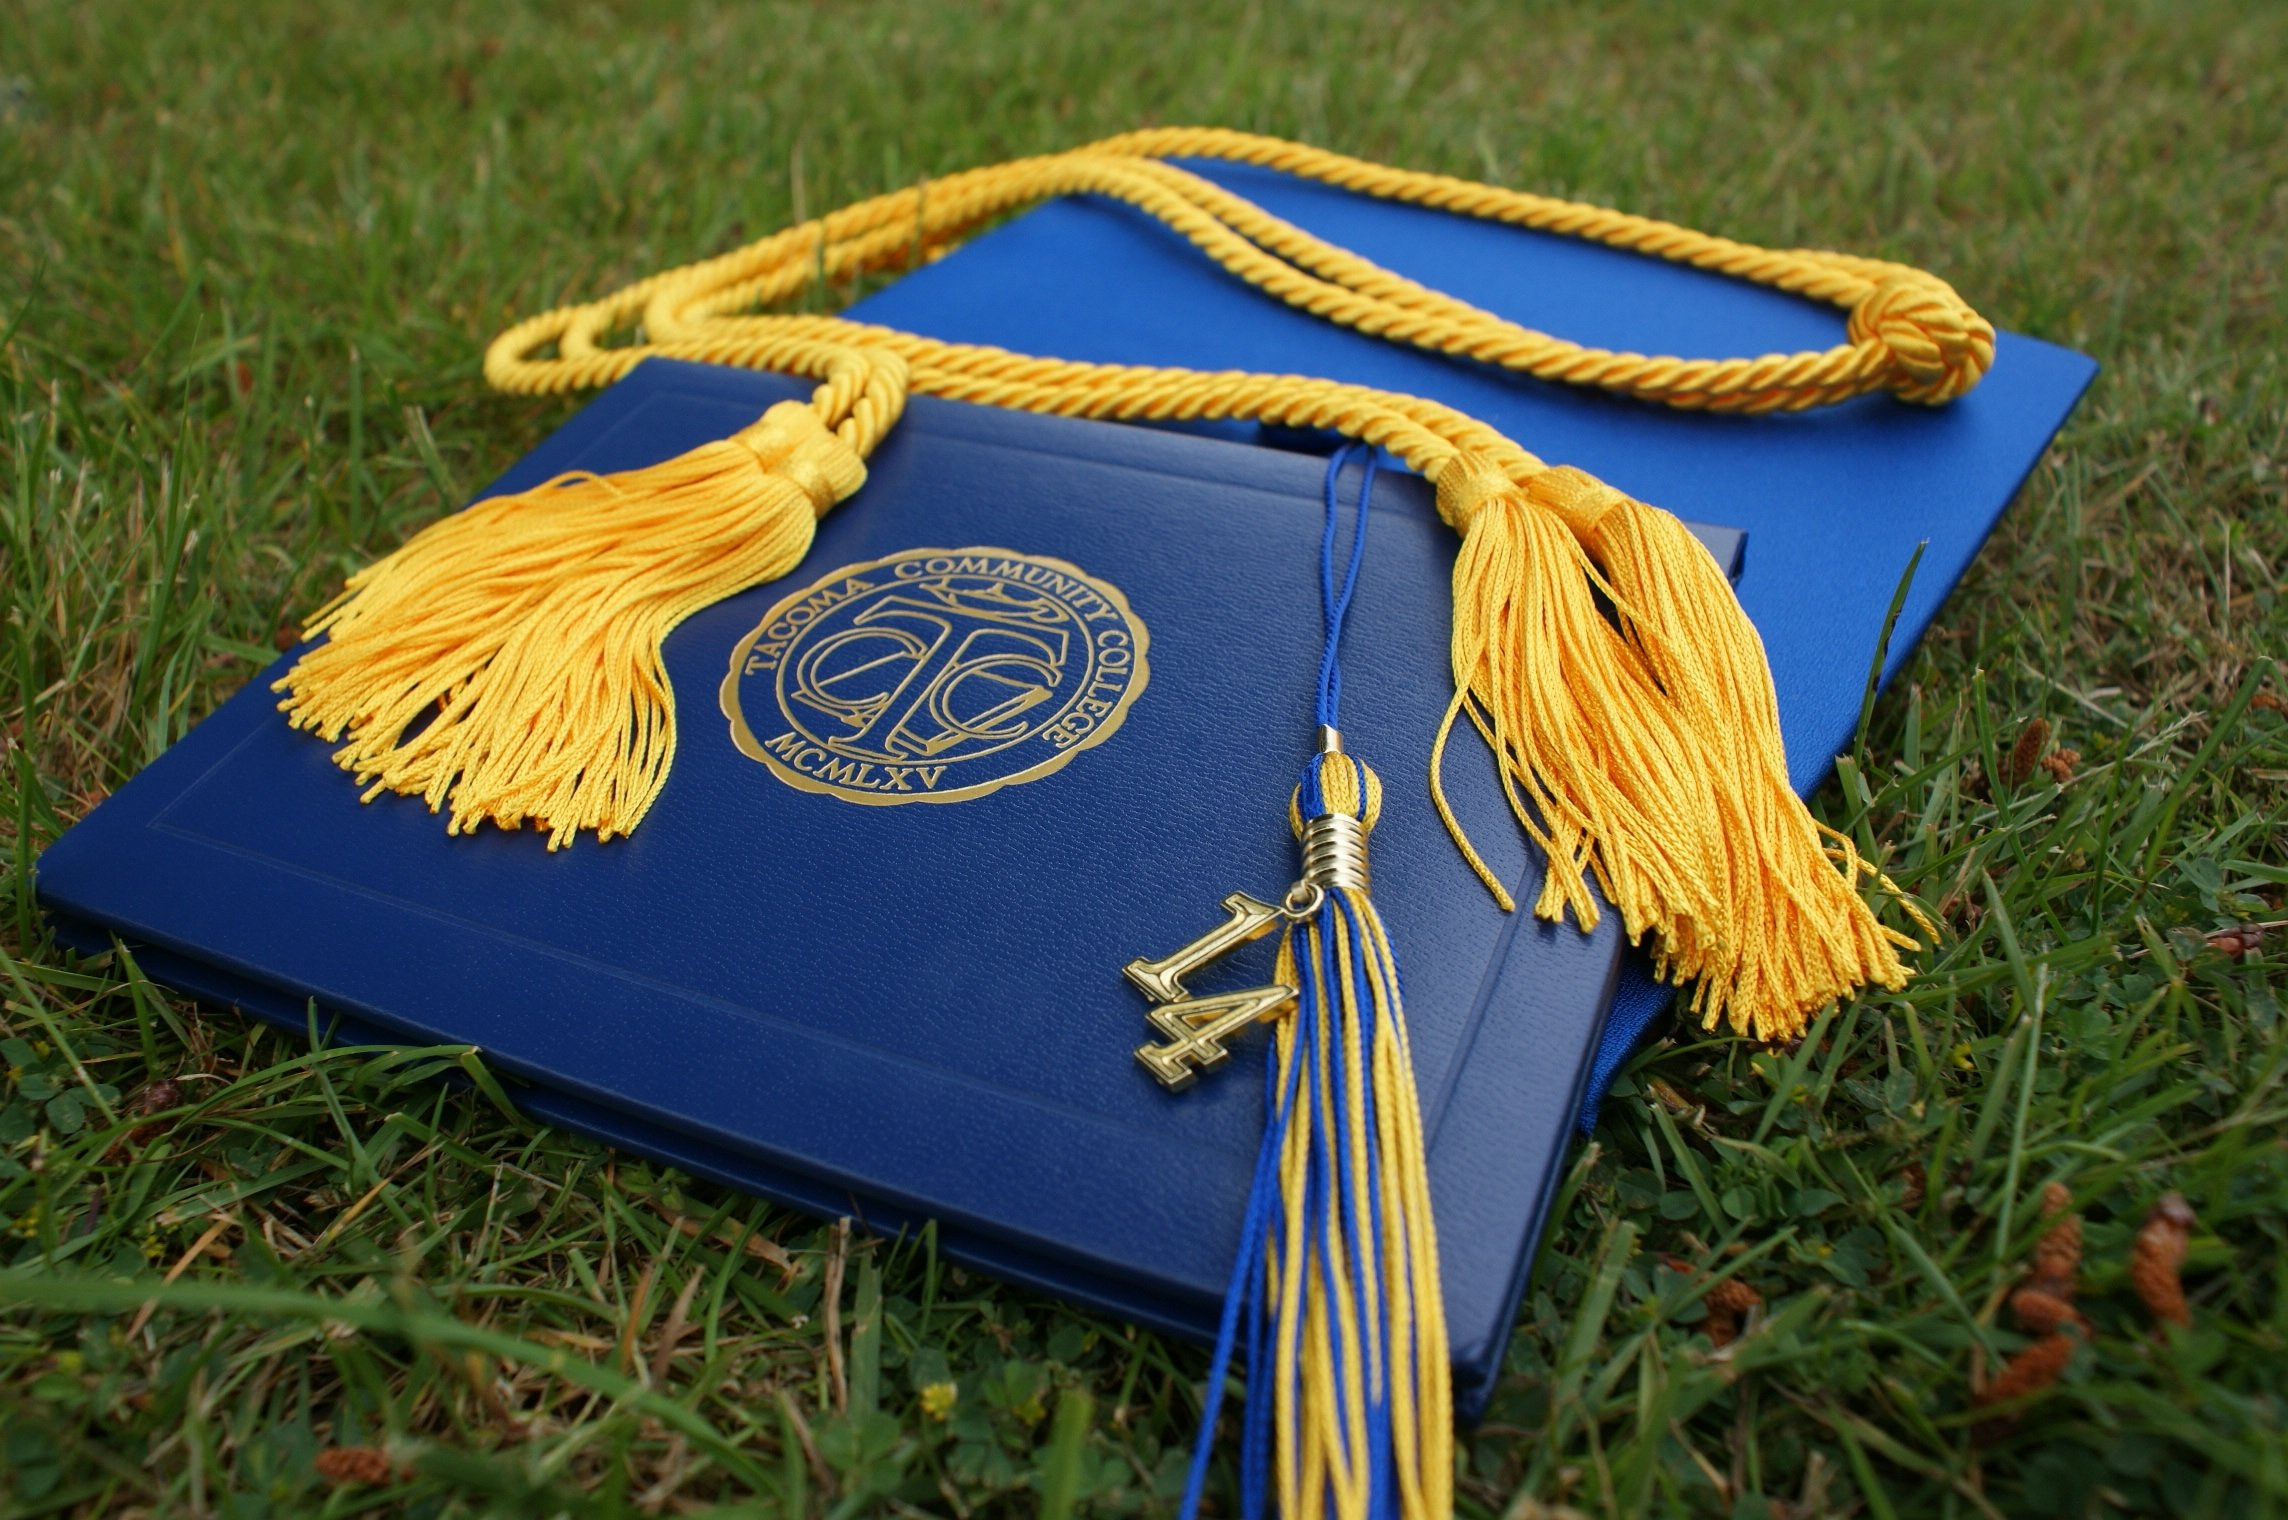 Blue diploma, mortar board and tassel resting on grass